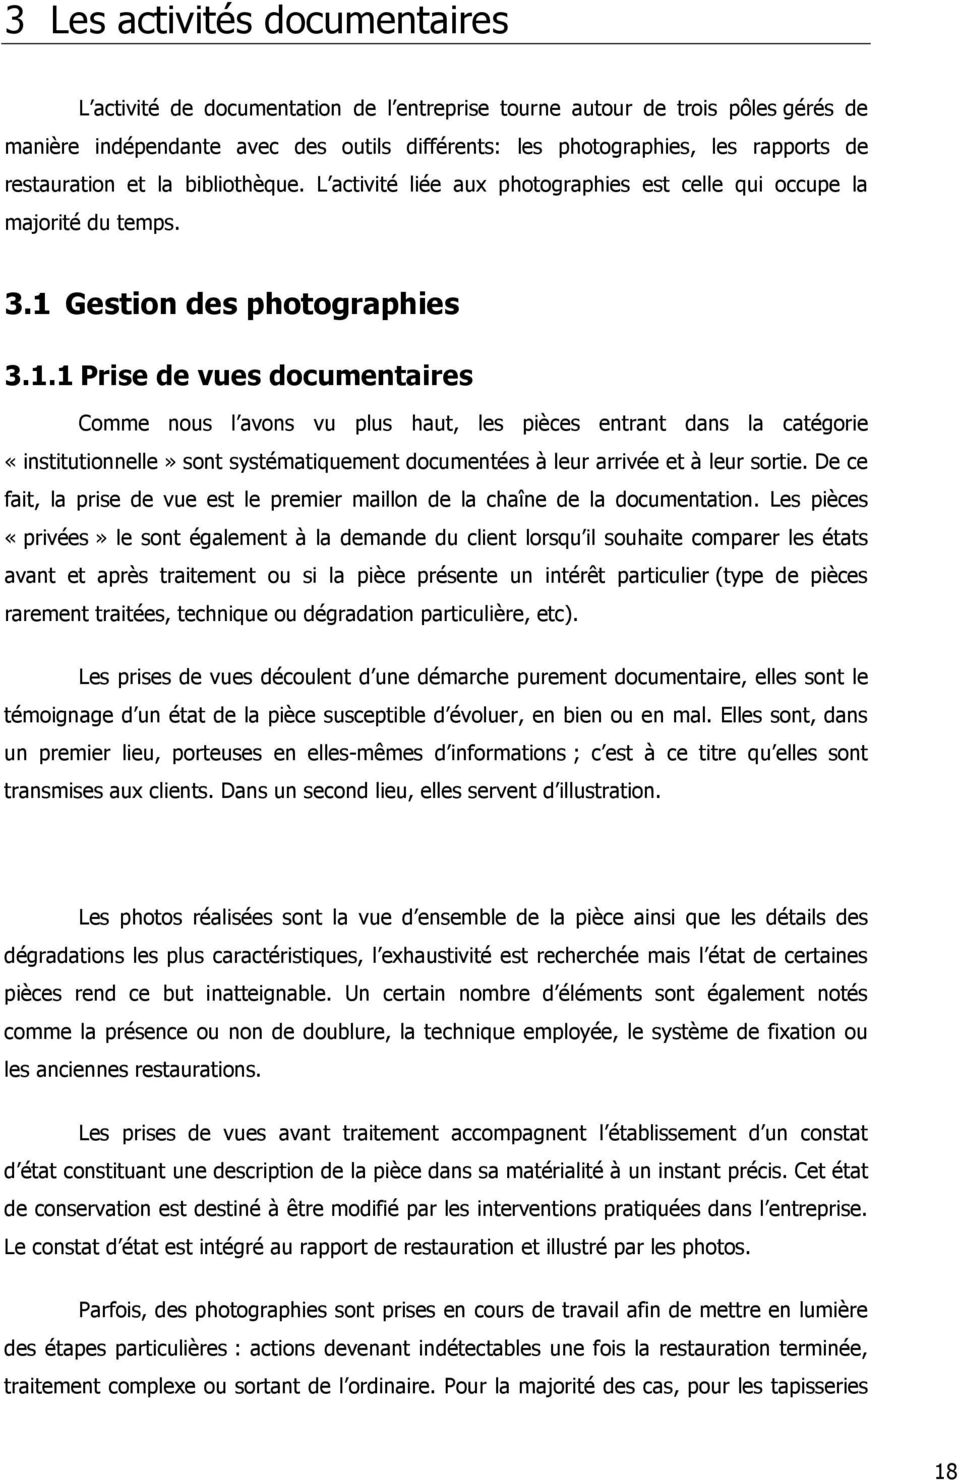 Gestion des photographies 3.1.